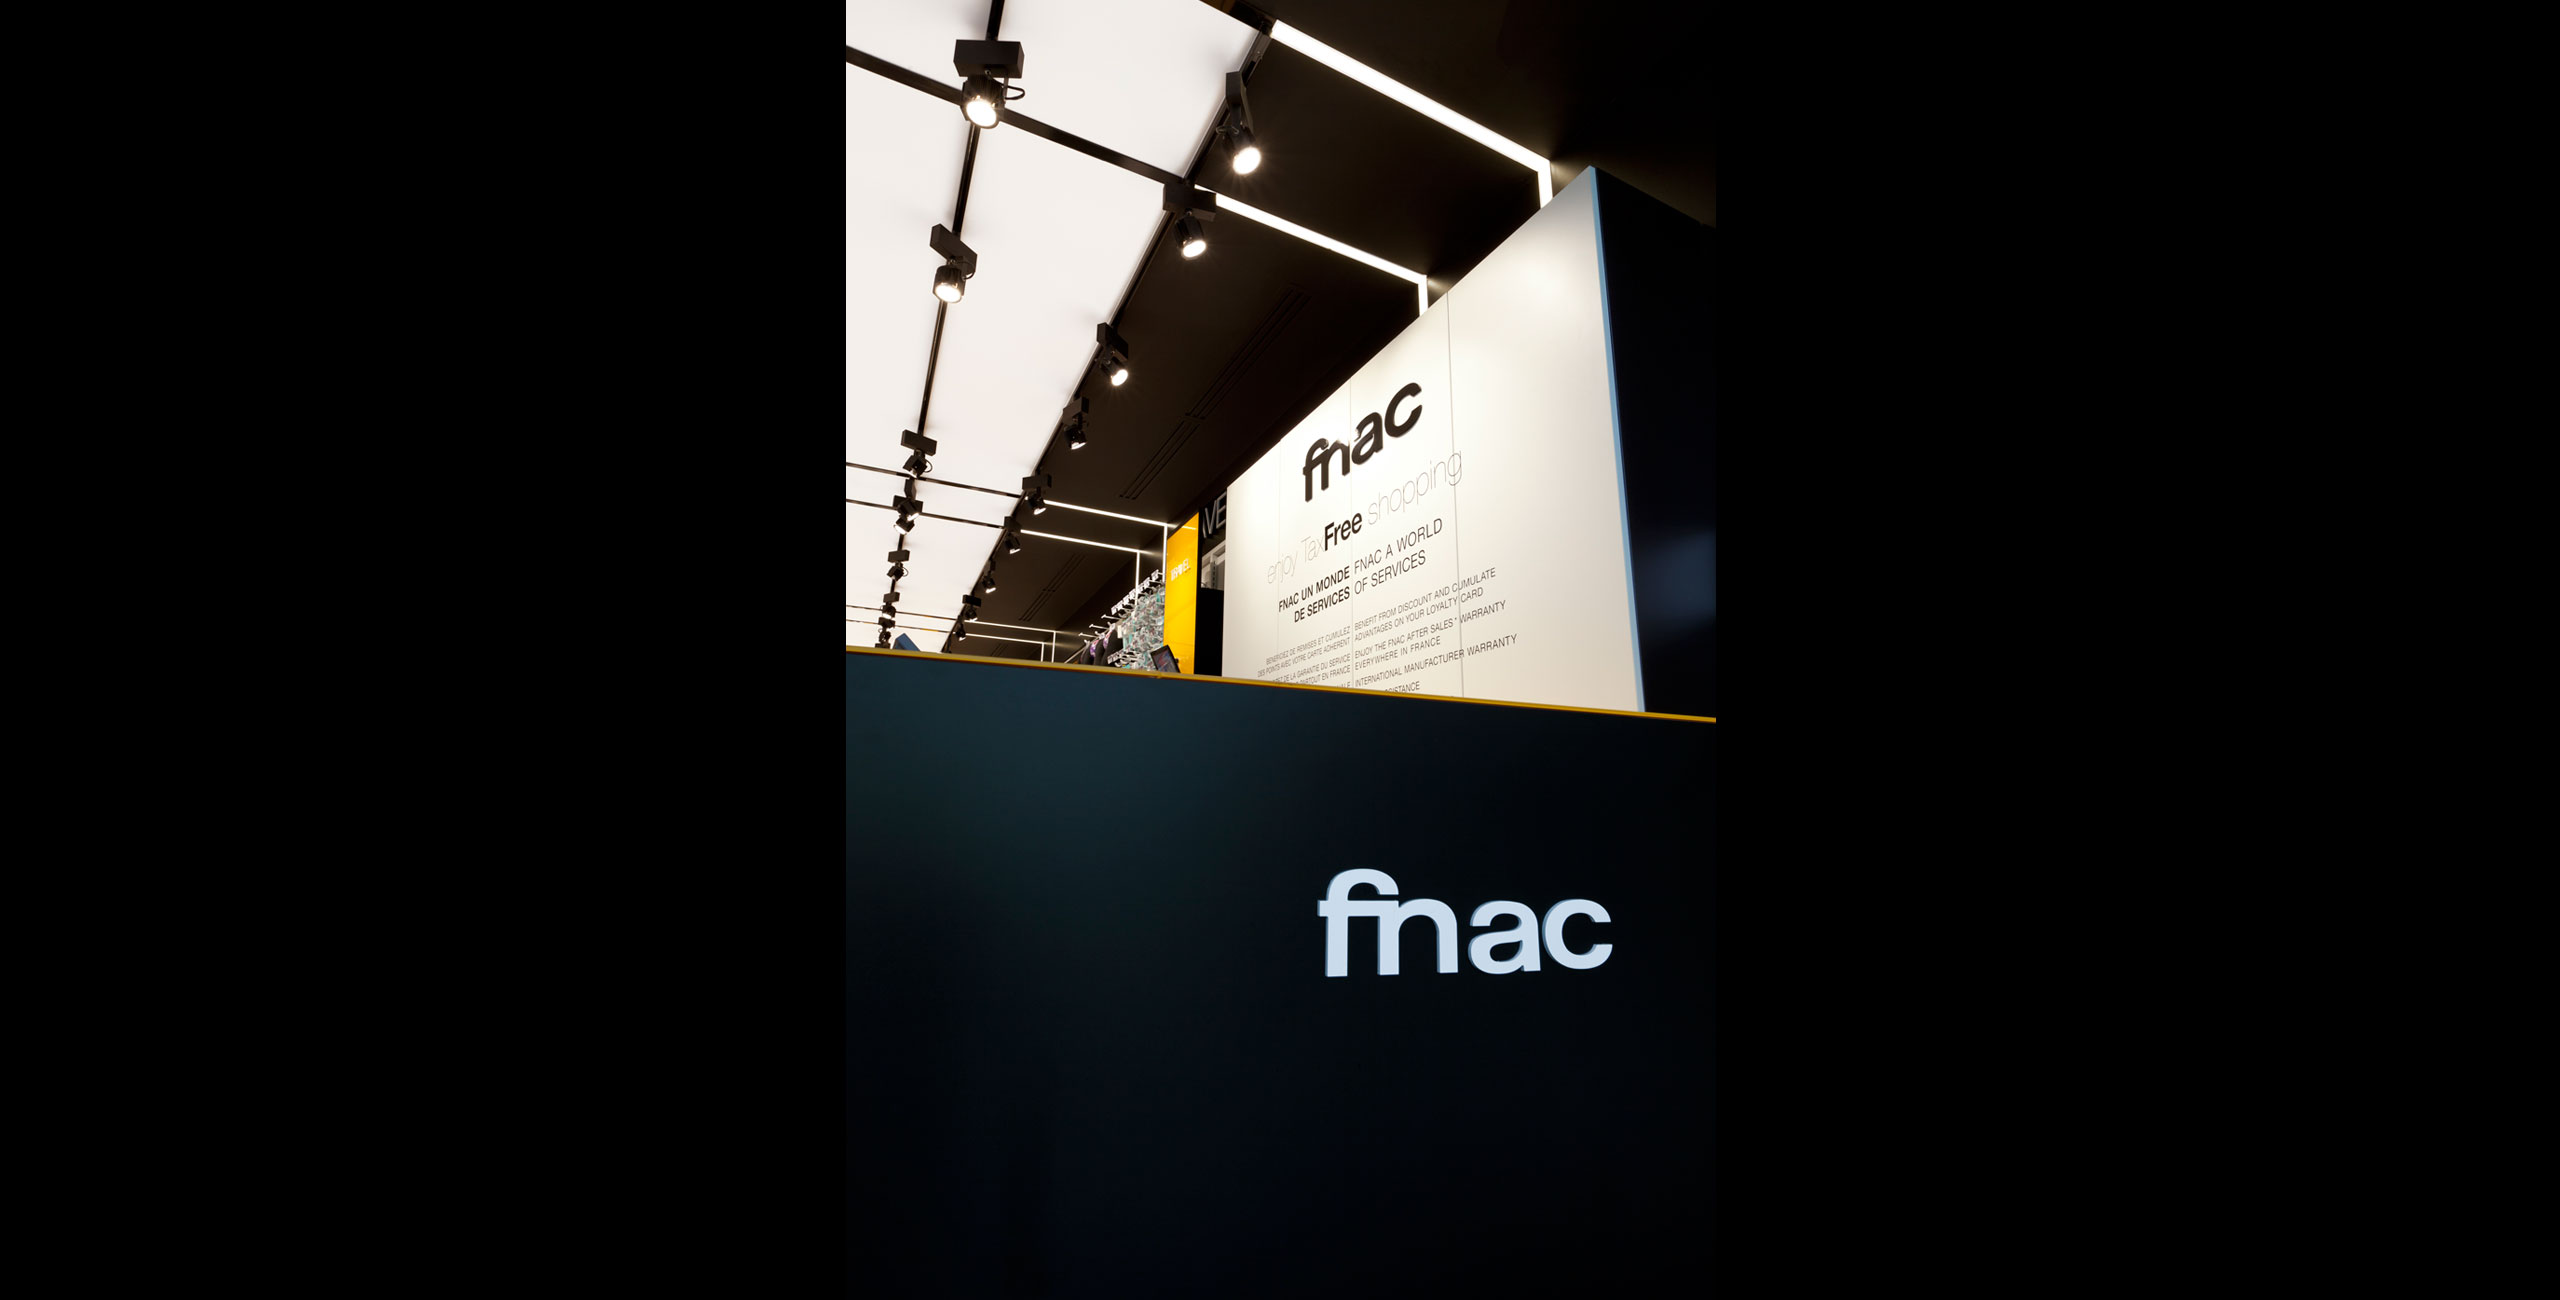 FNAC photo shoot